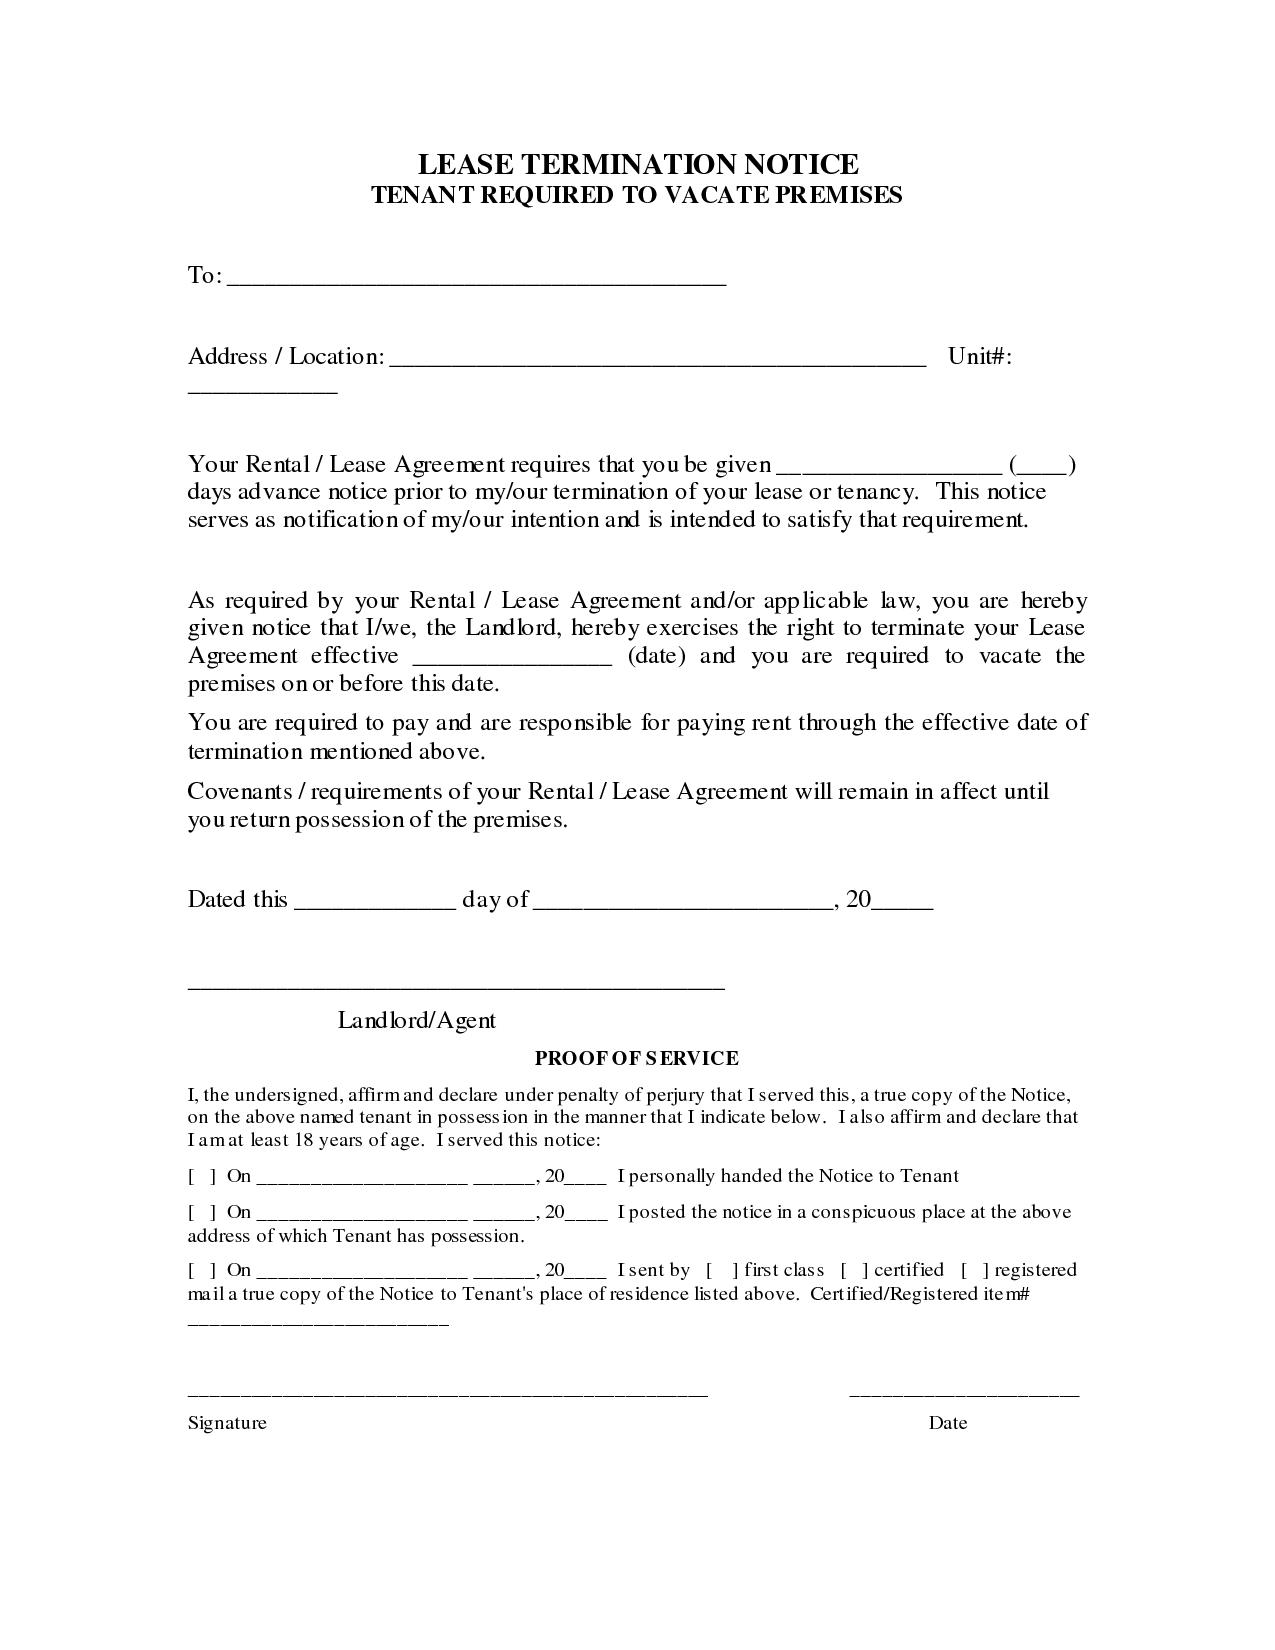 rental agreement termination letter sample lease from landlord tenant